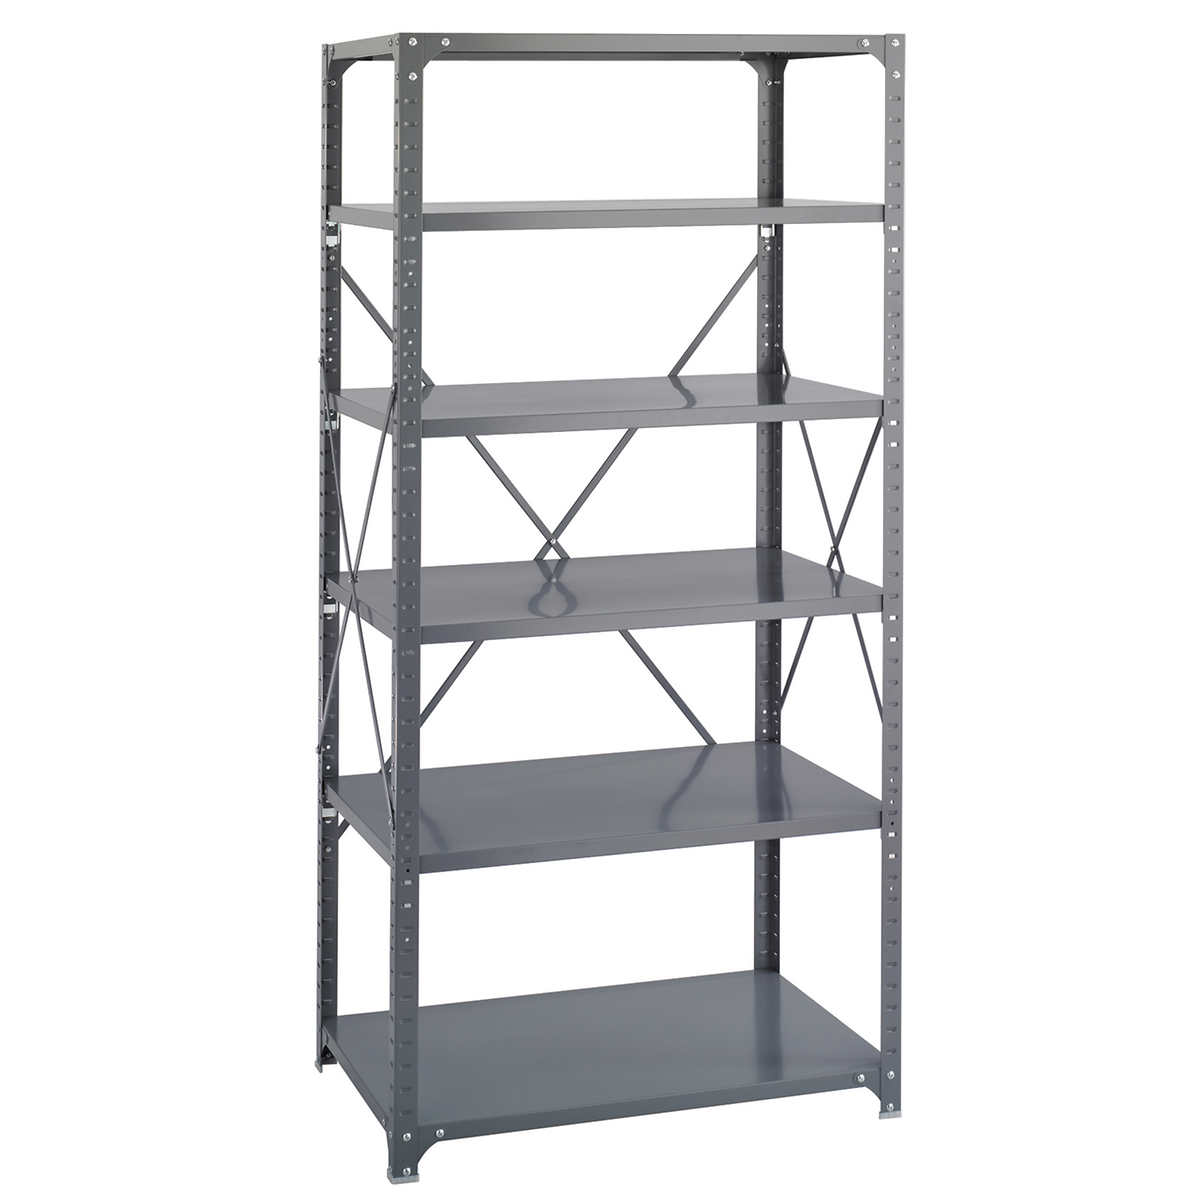 Safco 6-shelf Shelving Rack, 36